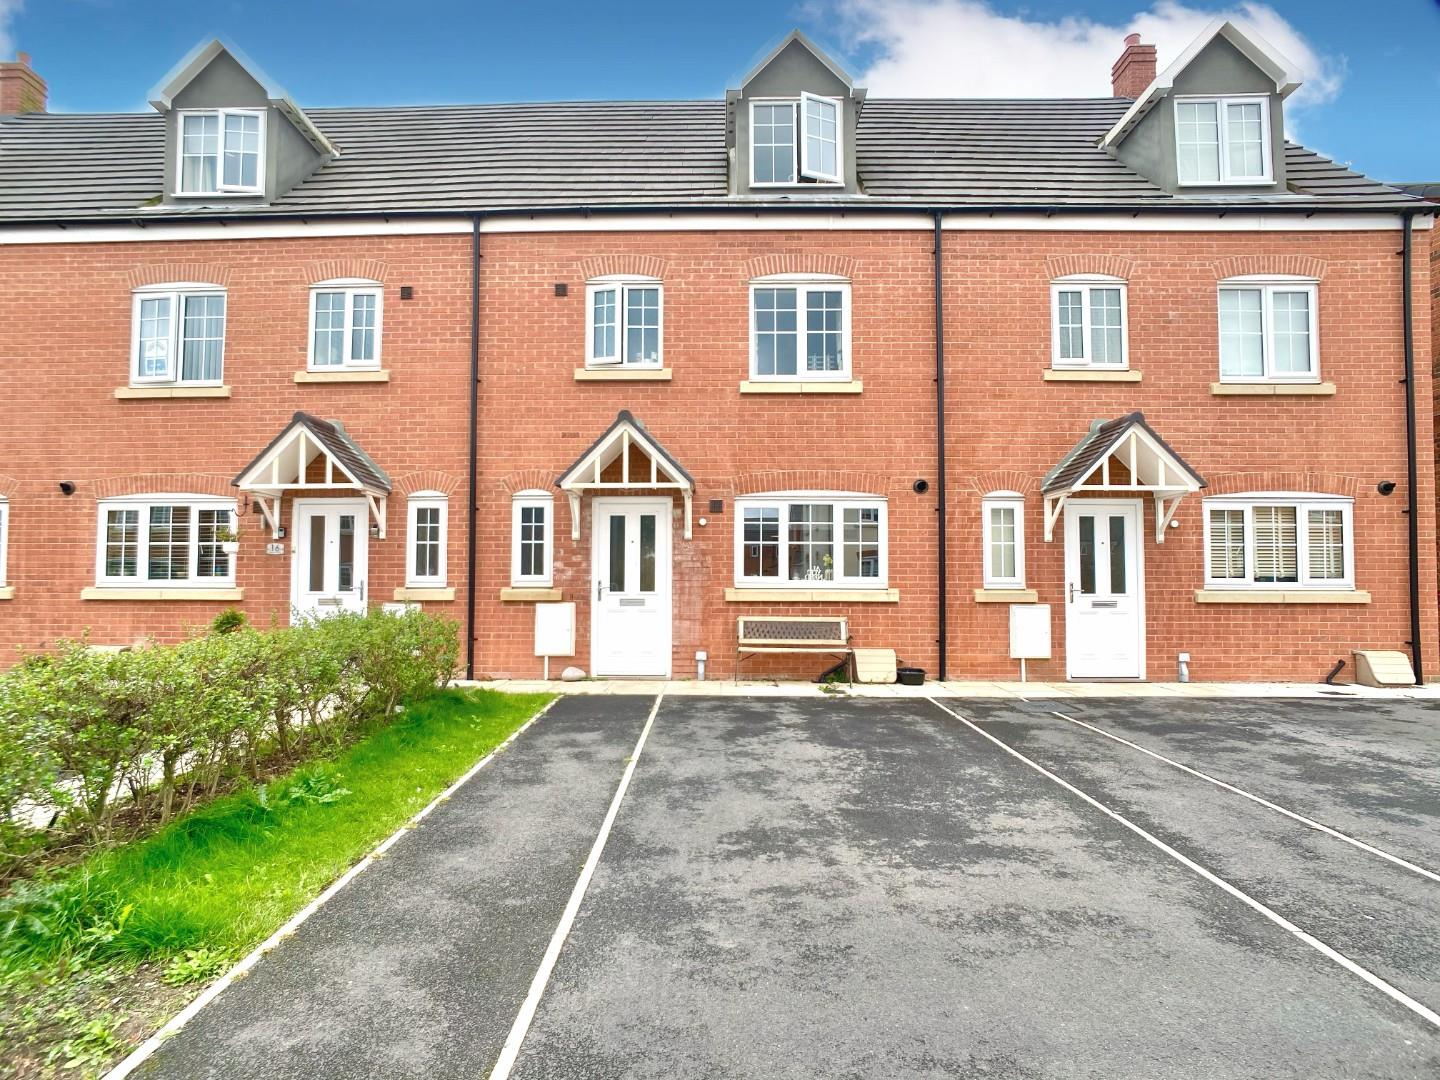 4 bed terraced house for sale in Mallow Avenue, Crewe, CW2